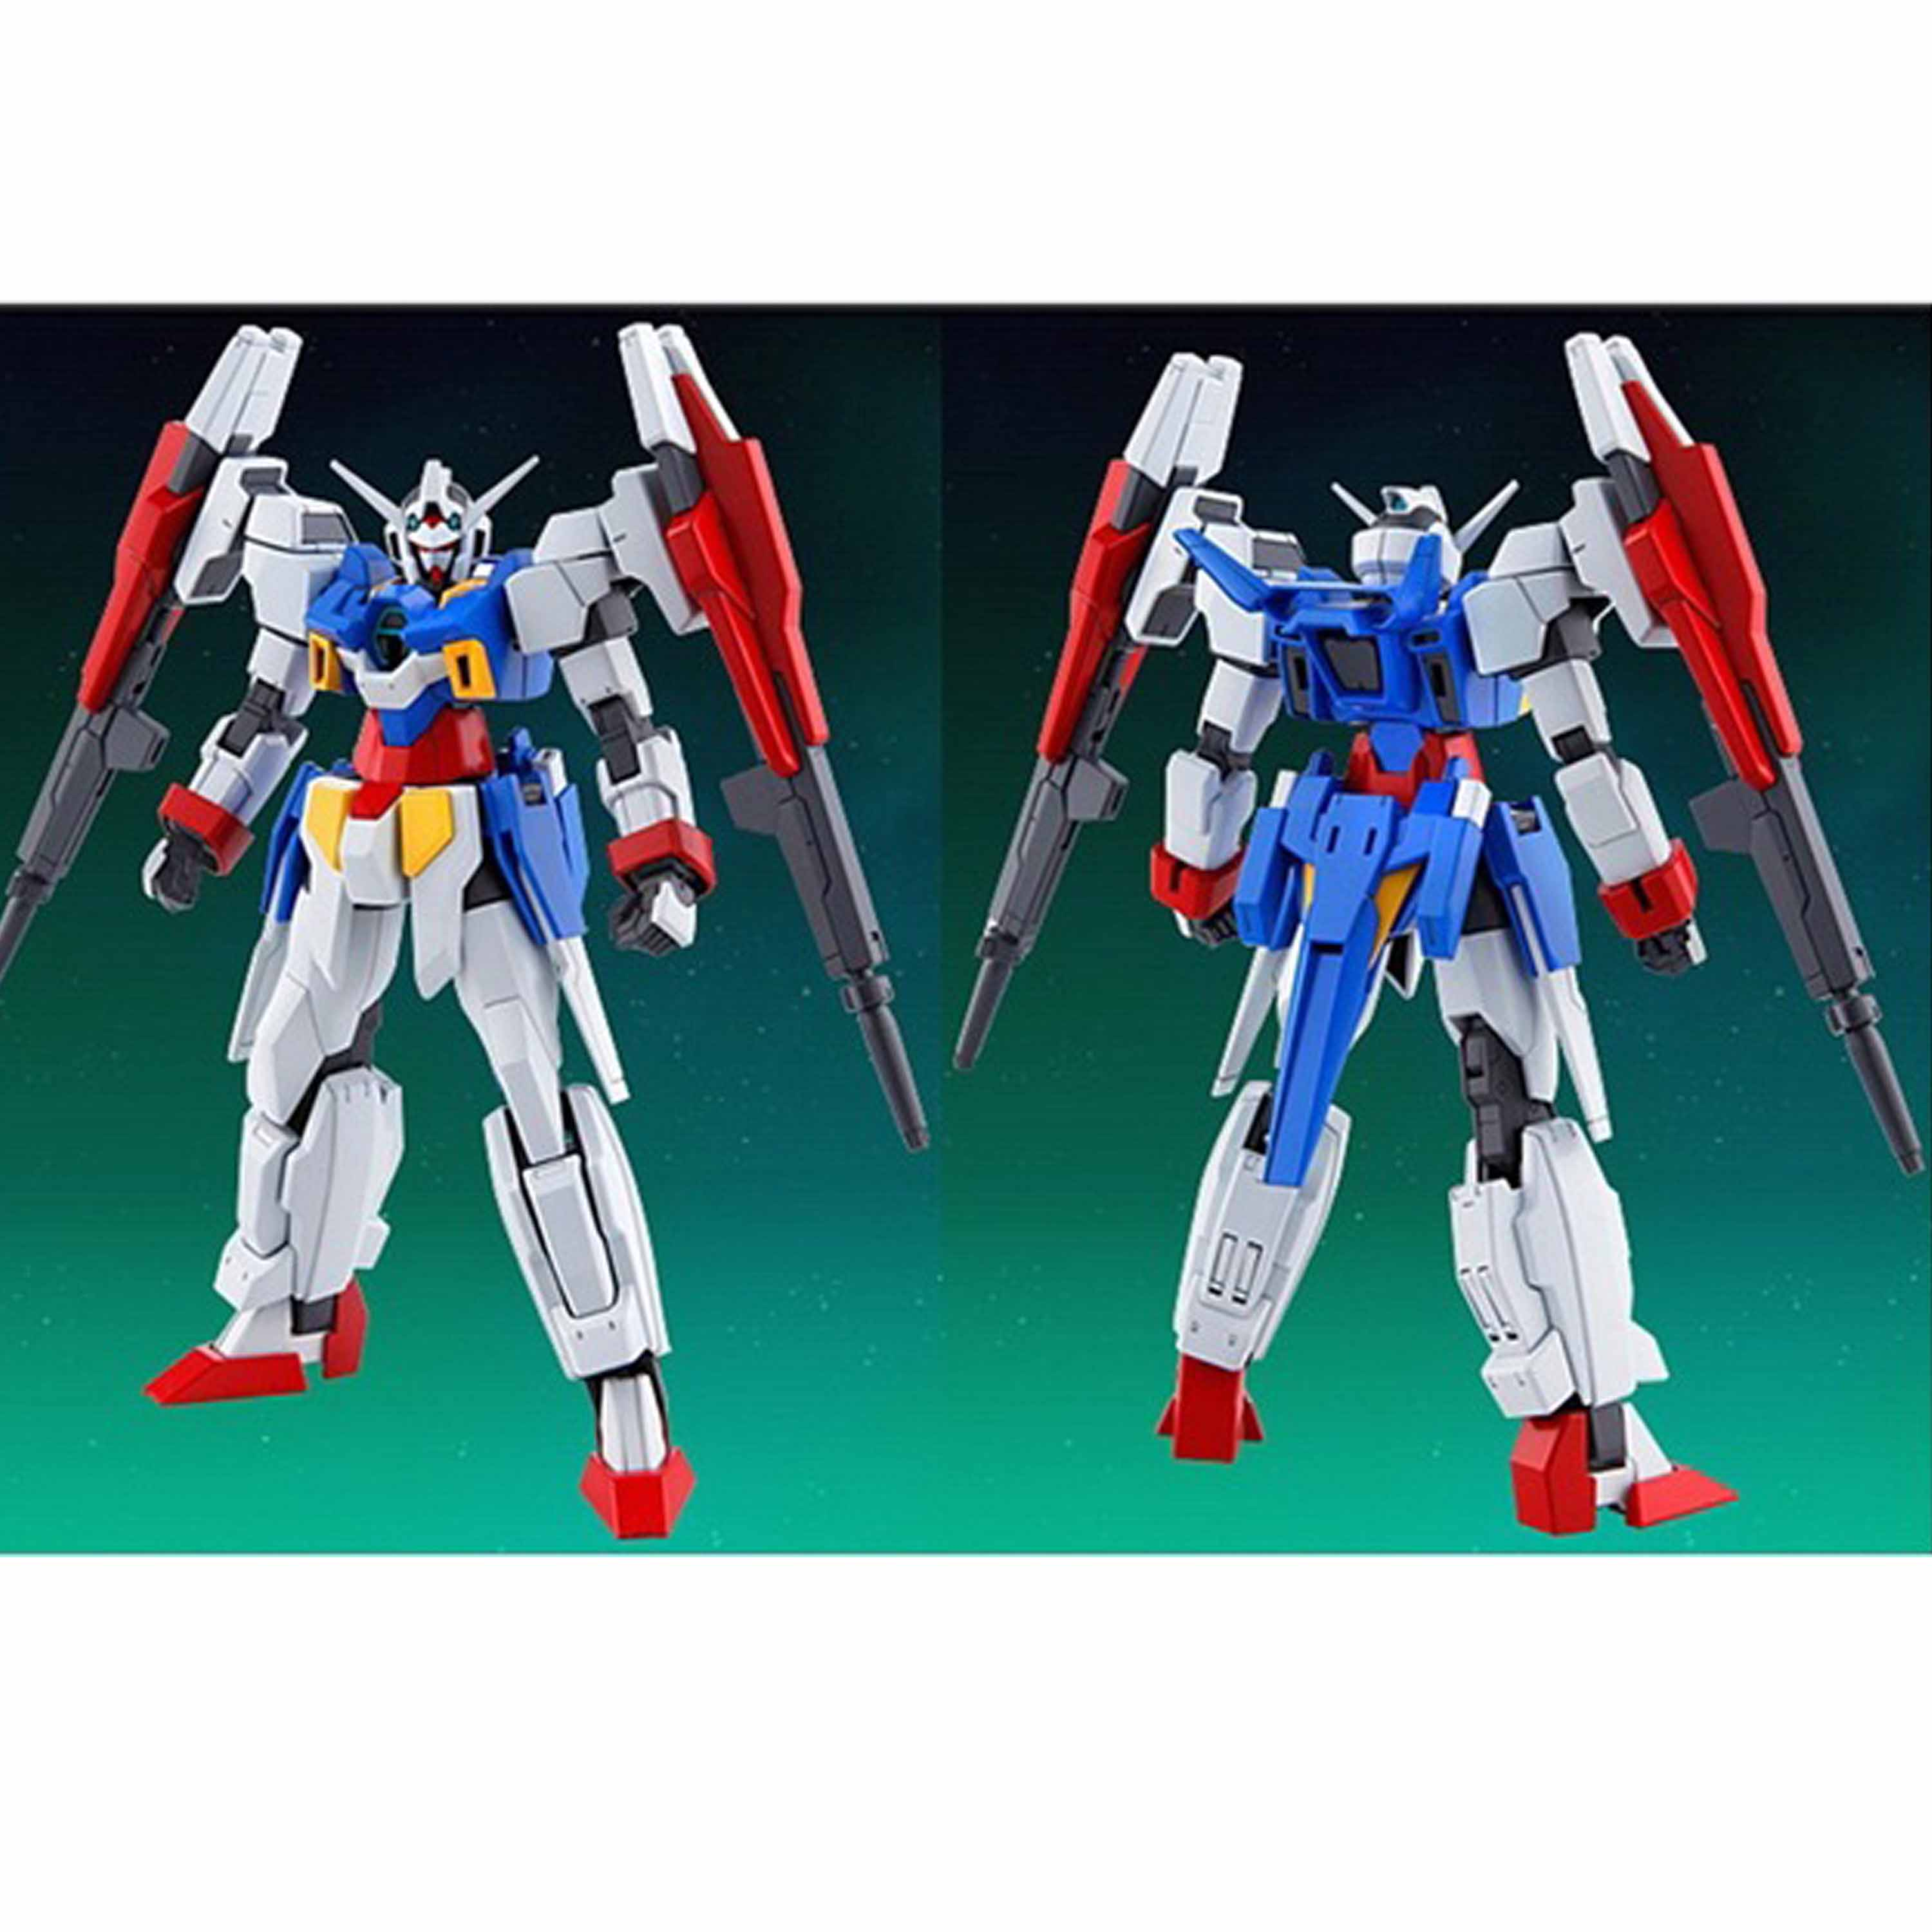 MG 1/100 GUNDAM AGE-2 DOUBLE BULLET